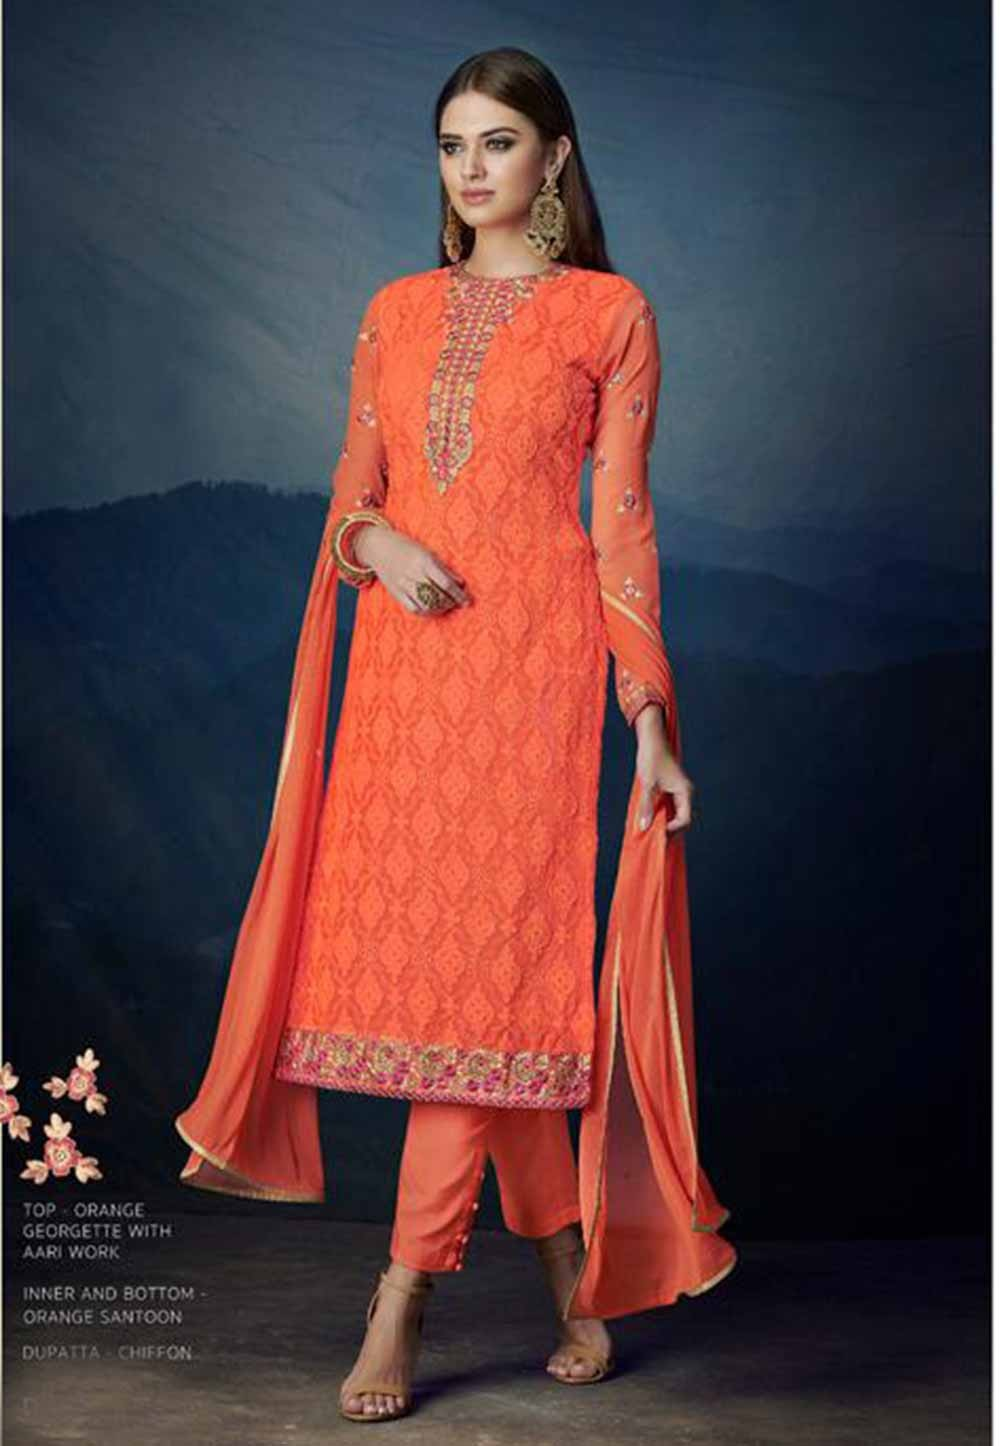 Orange Colour Party Wear Salwar Kameez